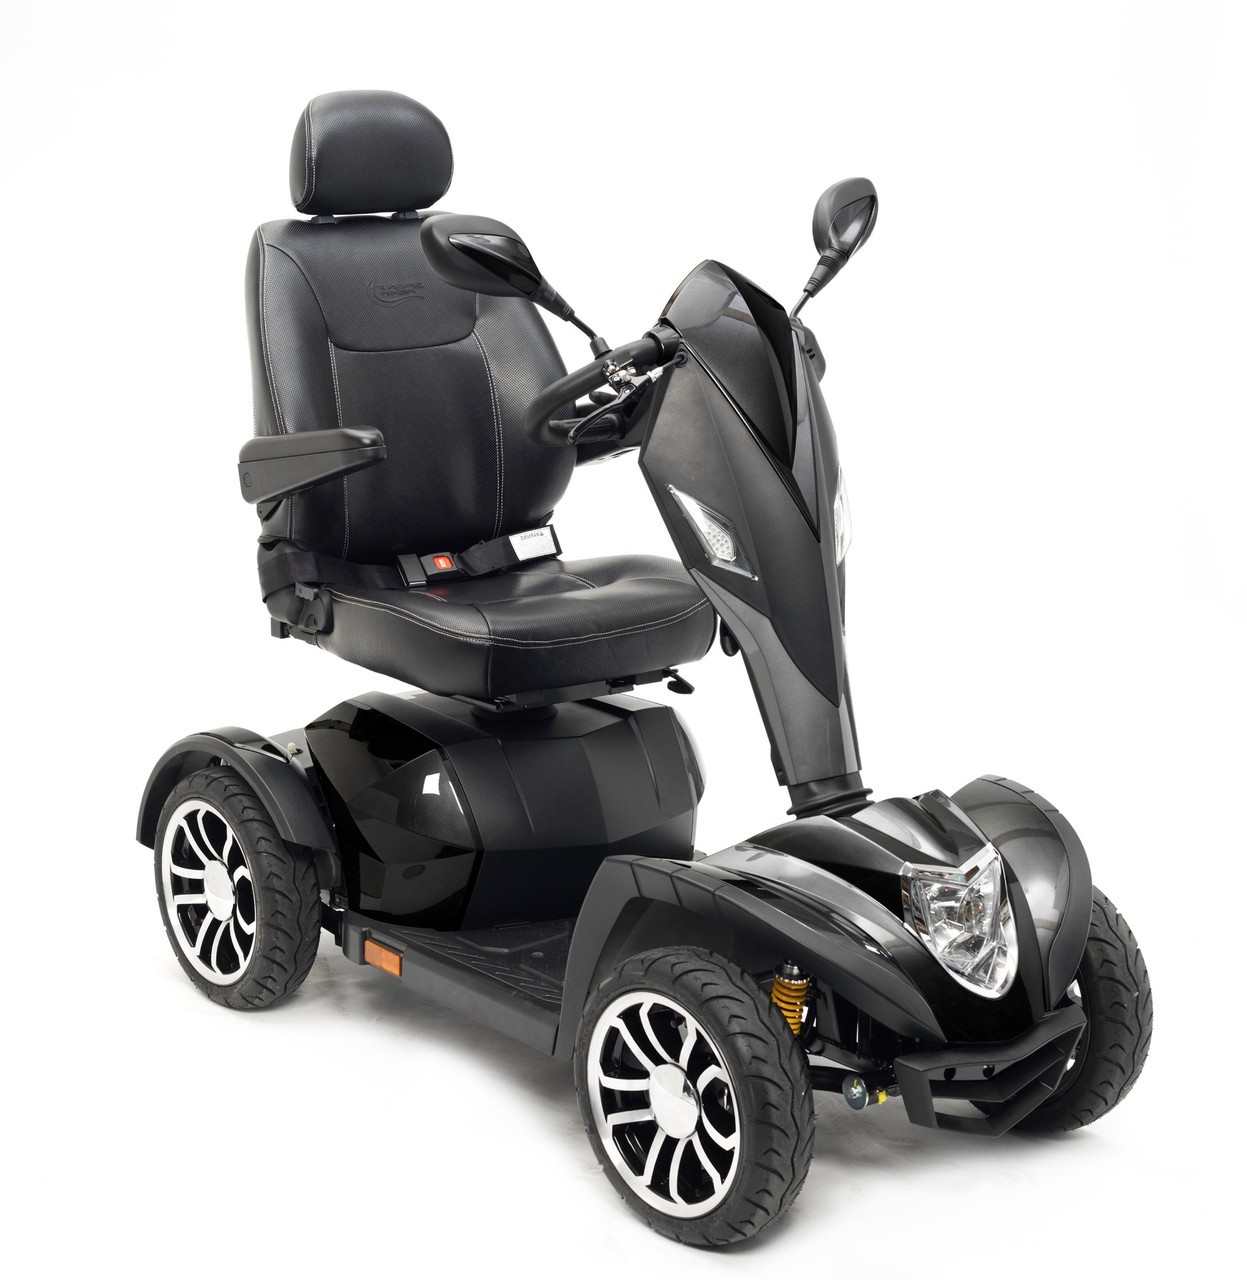 Image result for Things to Consider Before Buying Medical Mobility Scooter